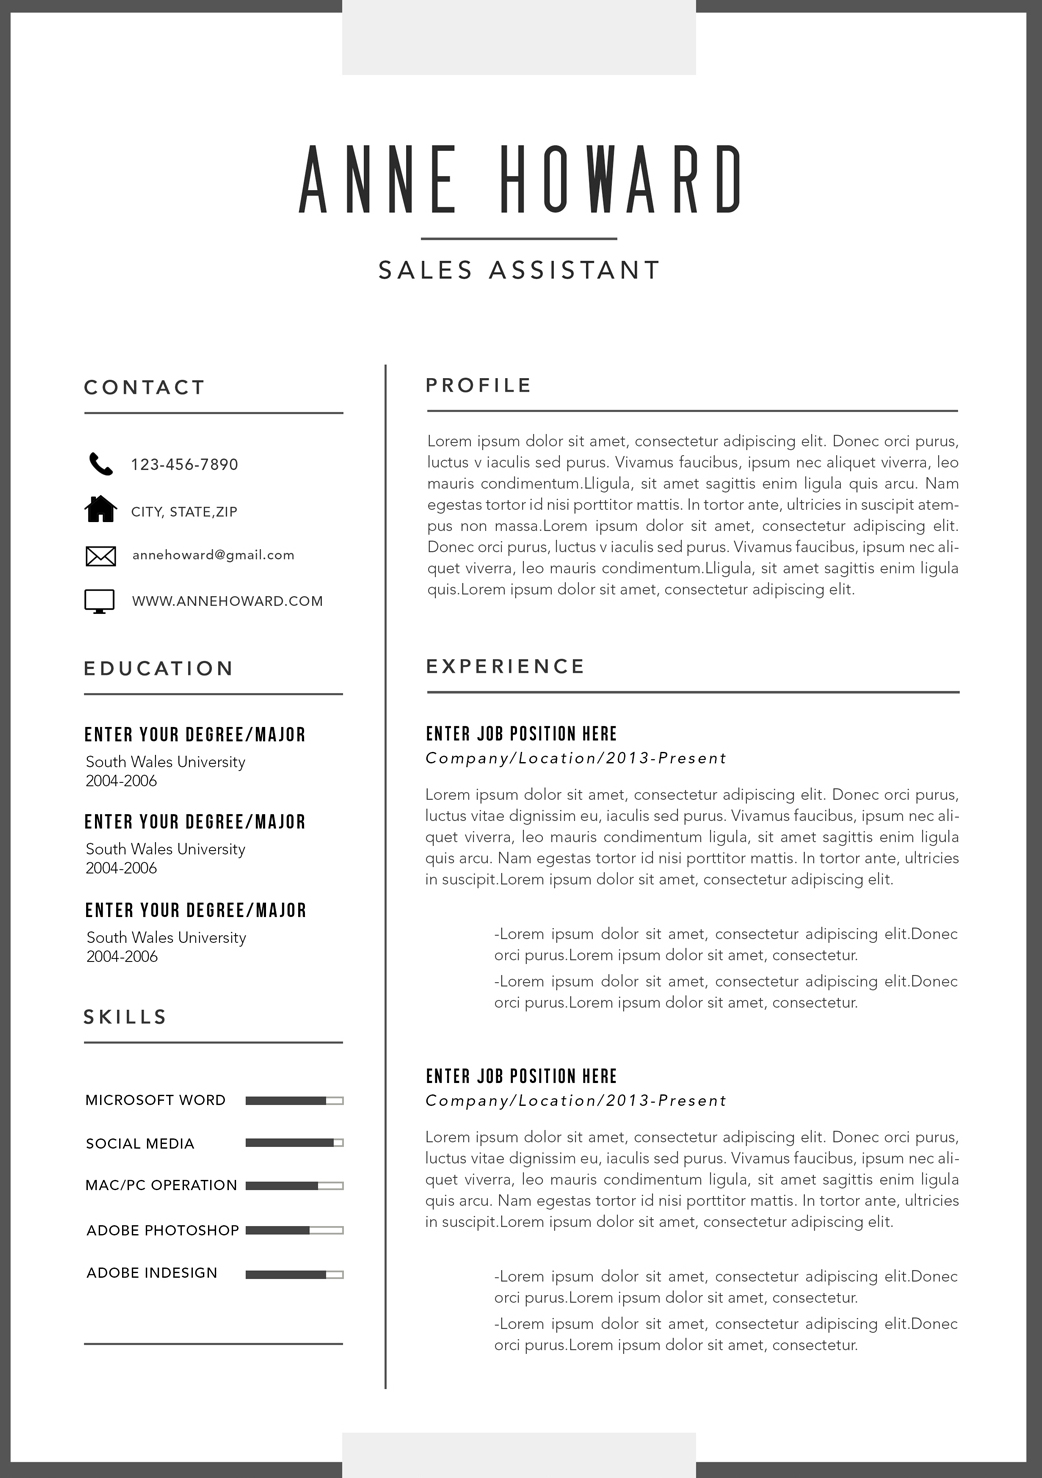 Best Corporate Resume Format The Best Modern Resume Templates For 2016